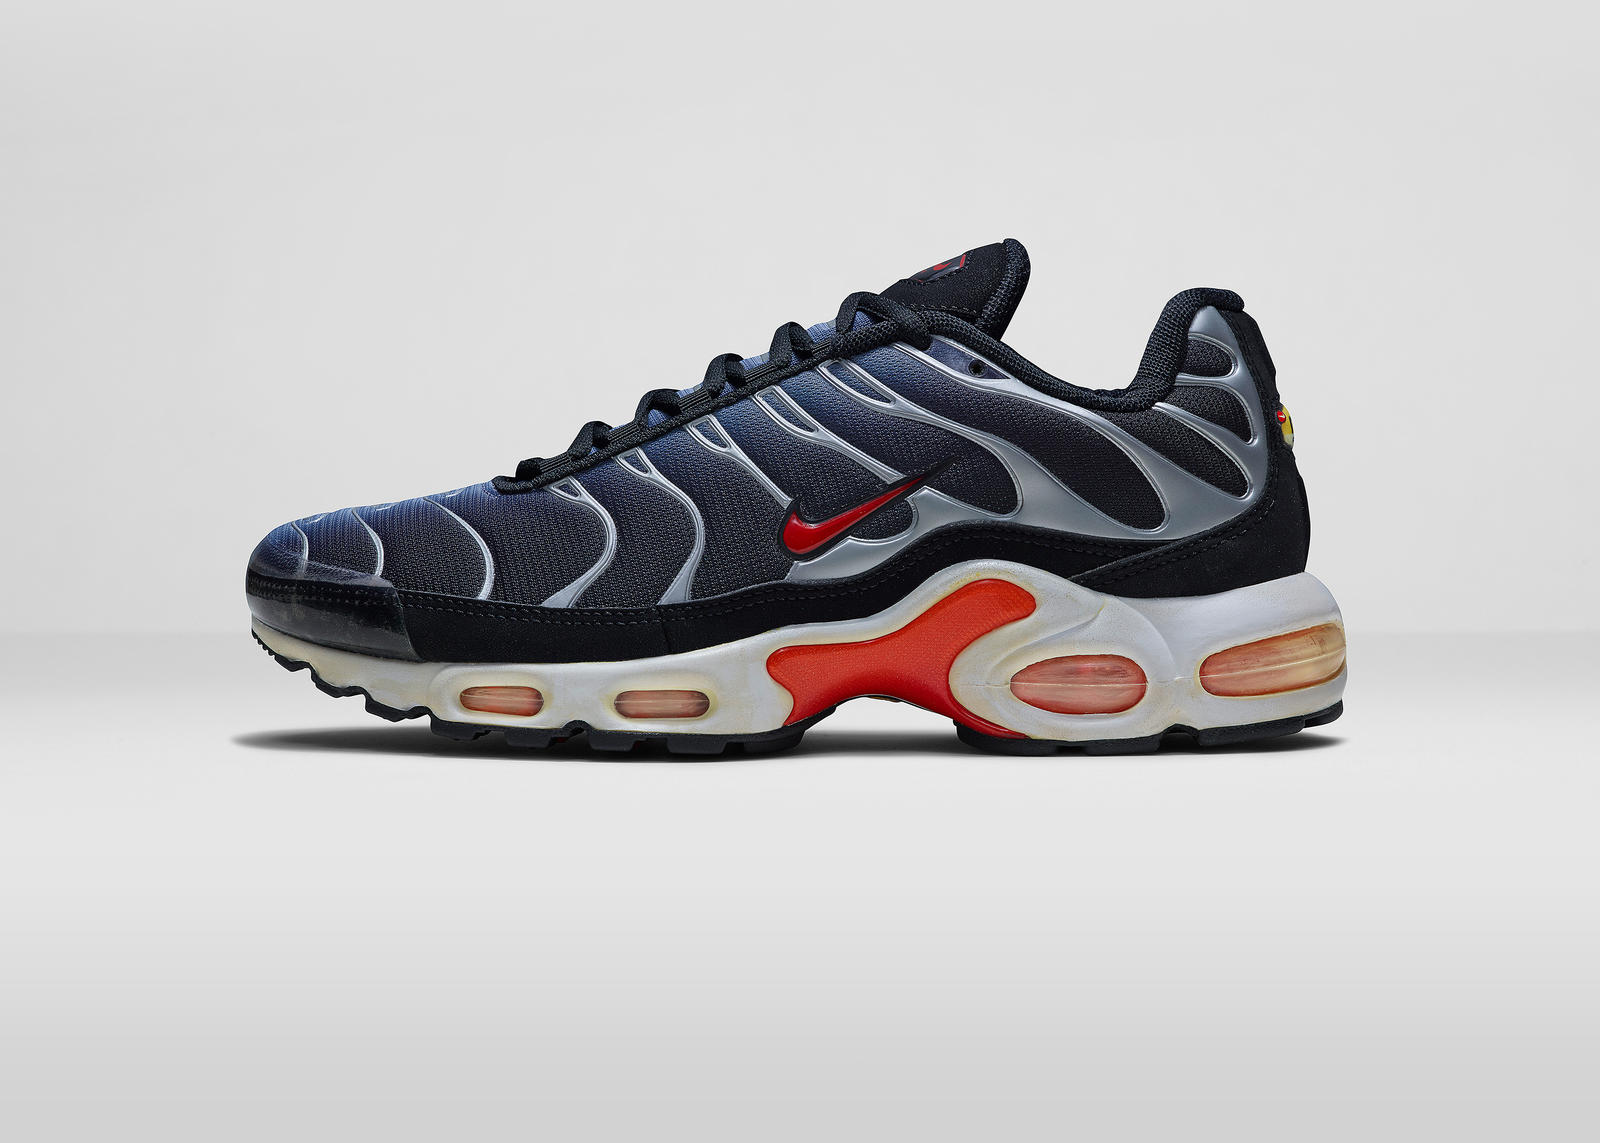 finest selection 9b39e c40d2 Air Max Plus (1998). Nike AirMaxDay 2015 15778 LAT.  Nike AirMaxDay 2015 15778 OUT